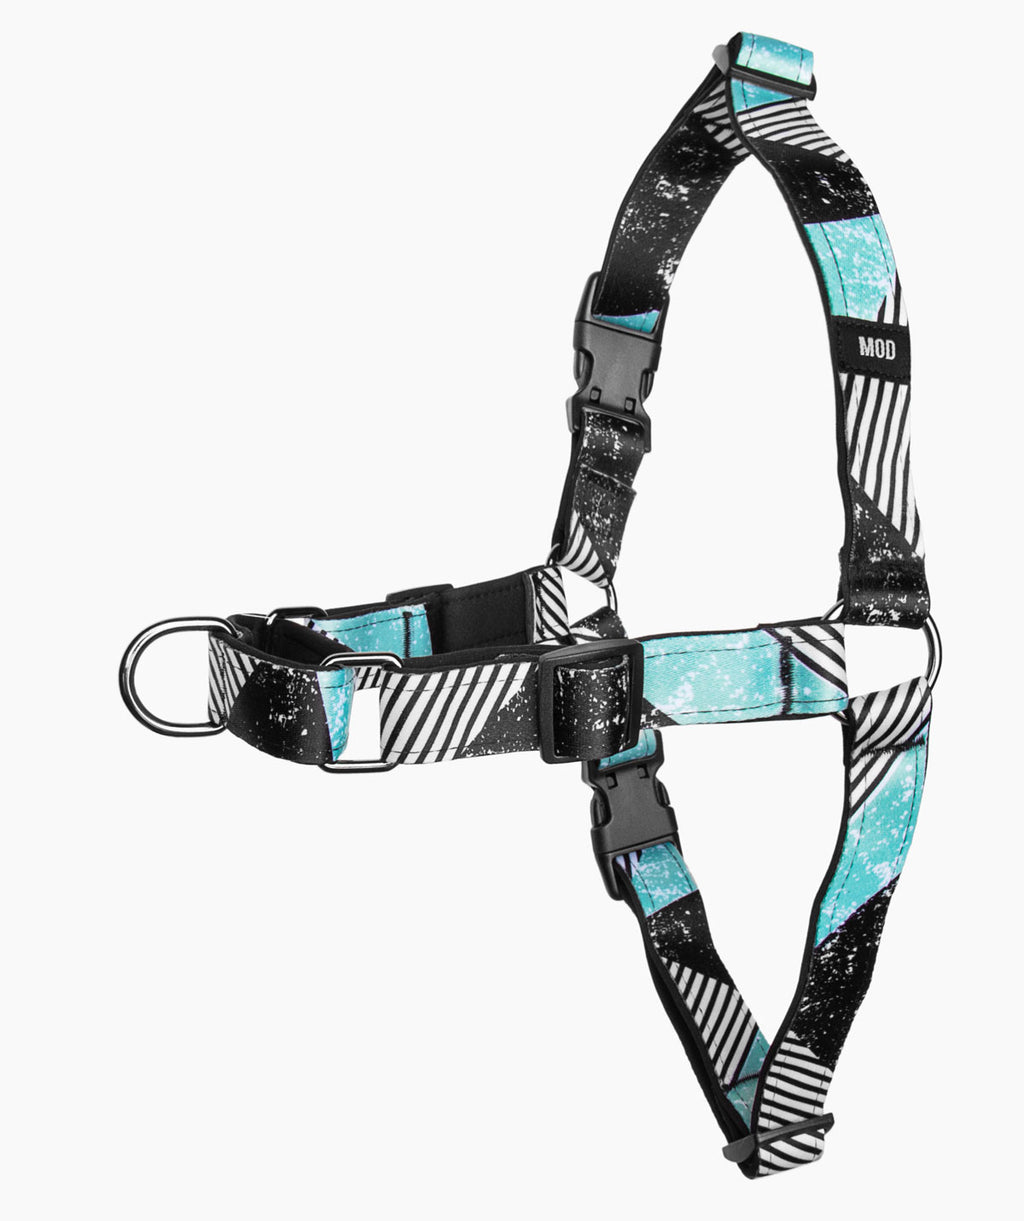 Pupper Mint No-Pull Harness - MODLEASH